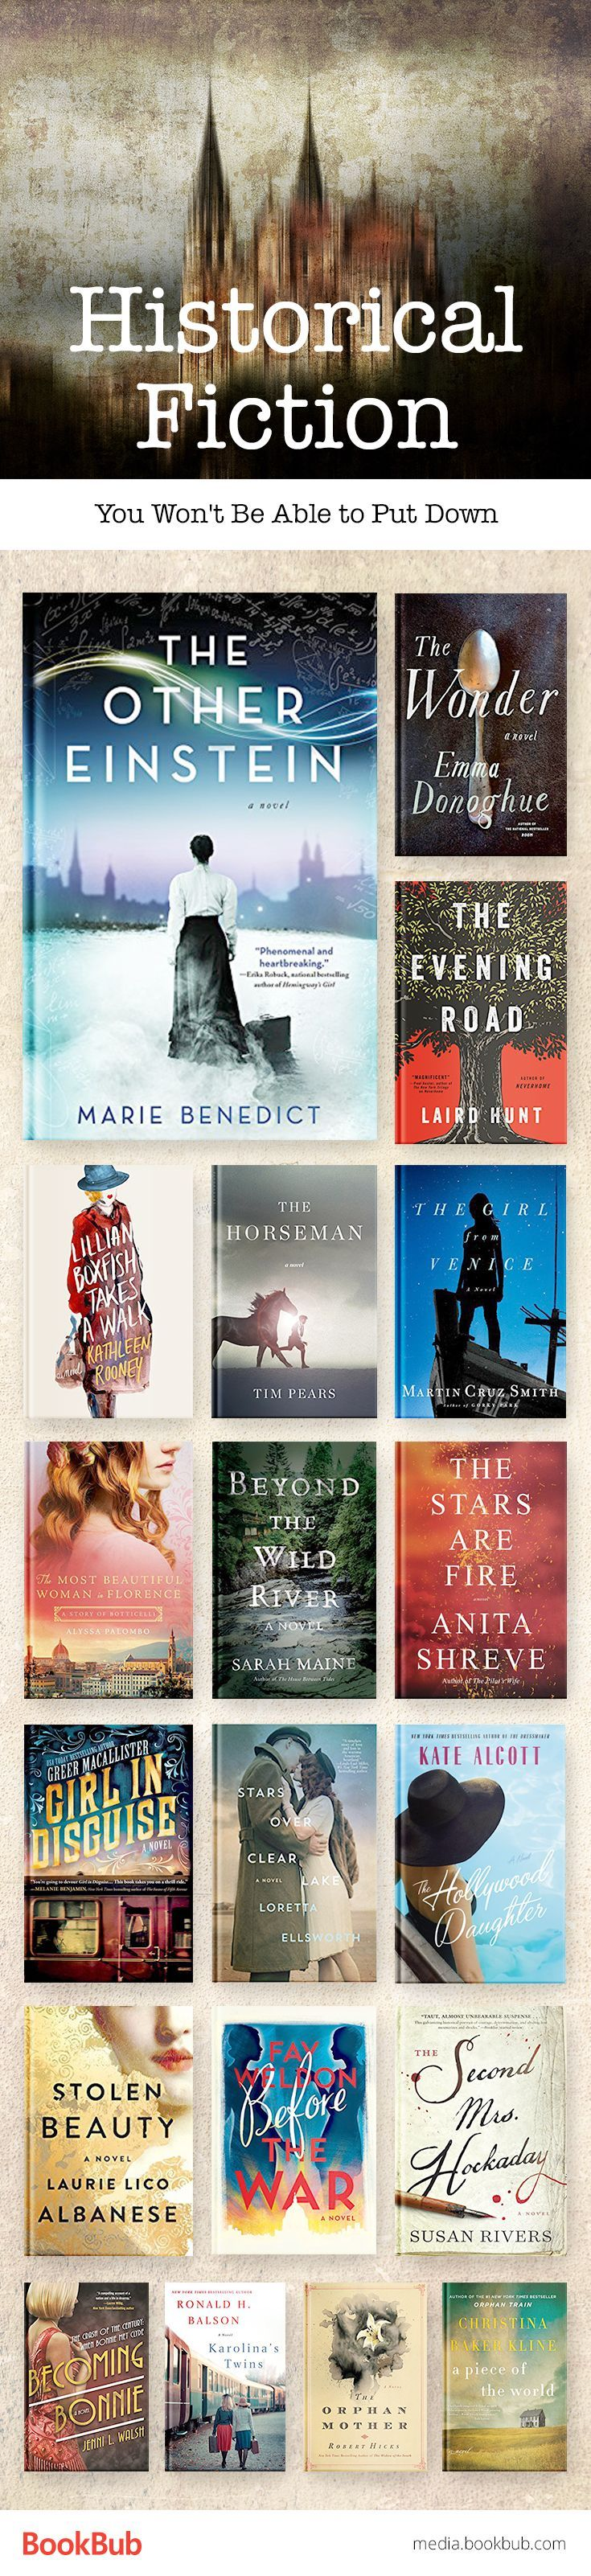 For Manny. Great historical fiction books you won't be able to put down. If you love history novels, this reading list is for you.